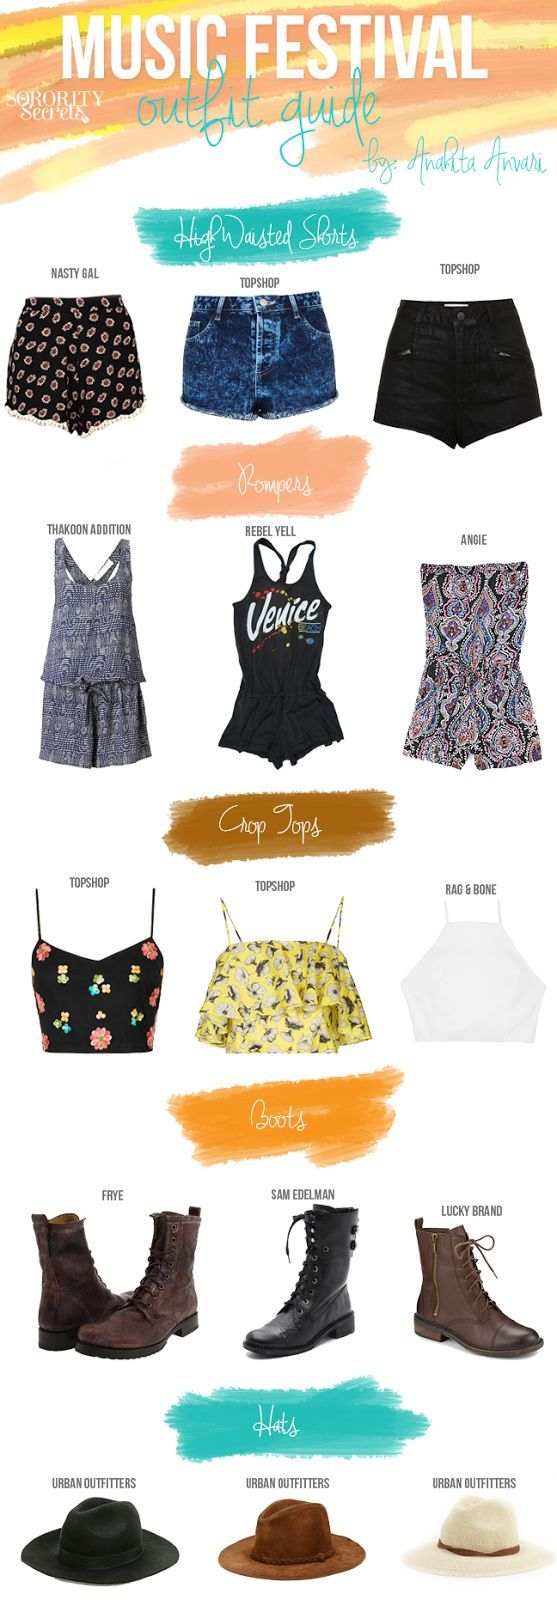 Music Festival Outfit Guide. Let the shopping begin.